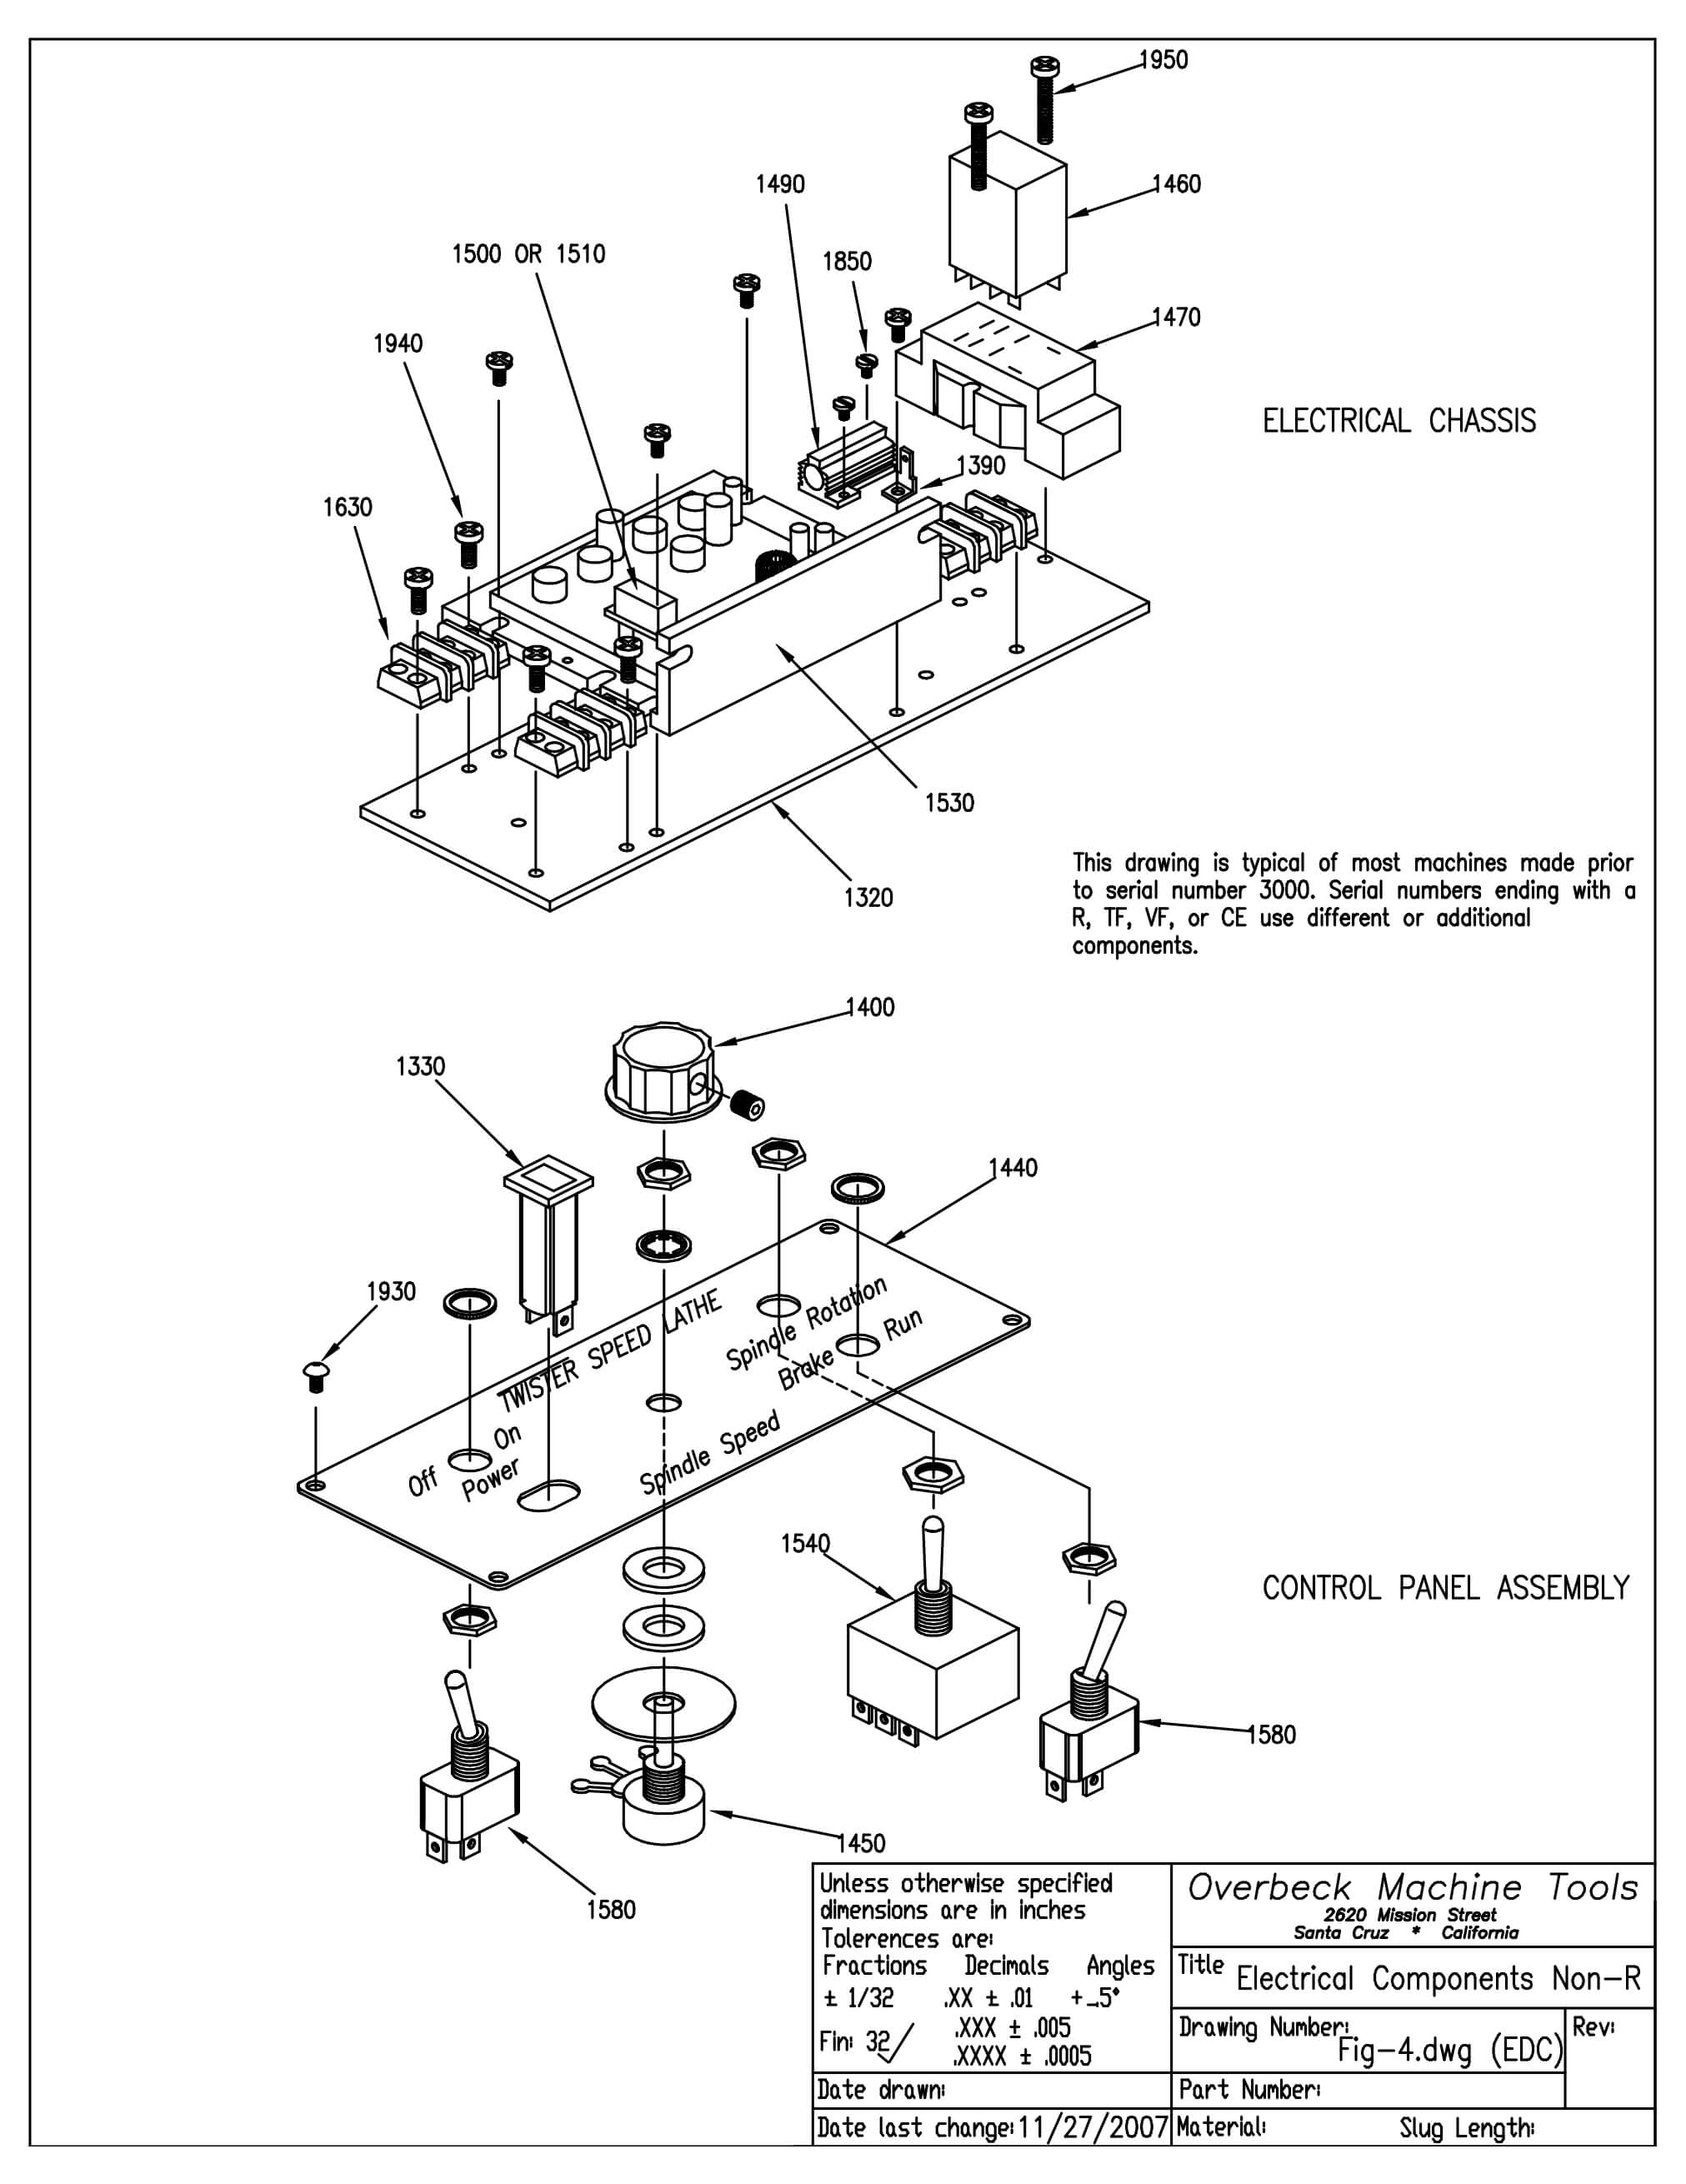 Electrical Components Non R Type'